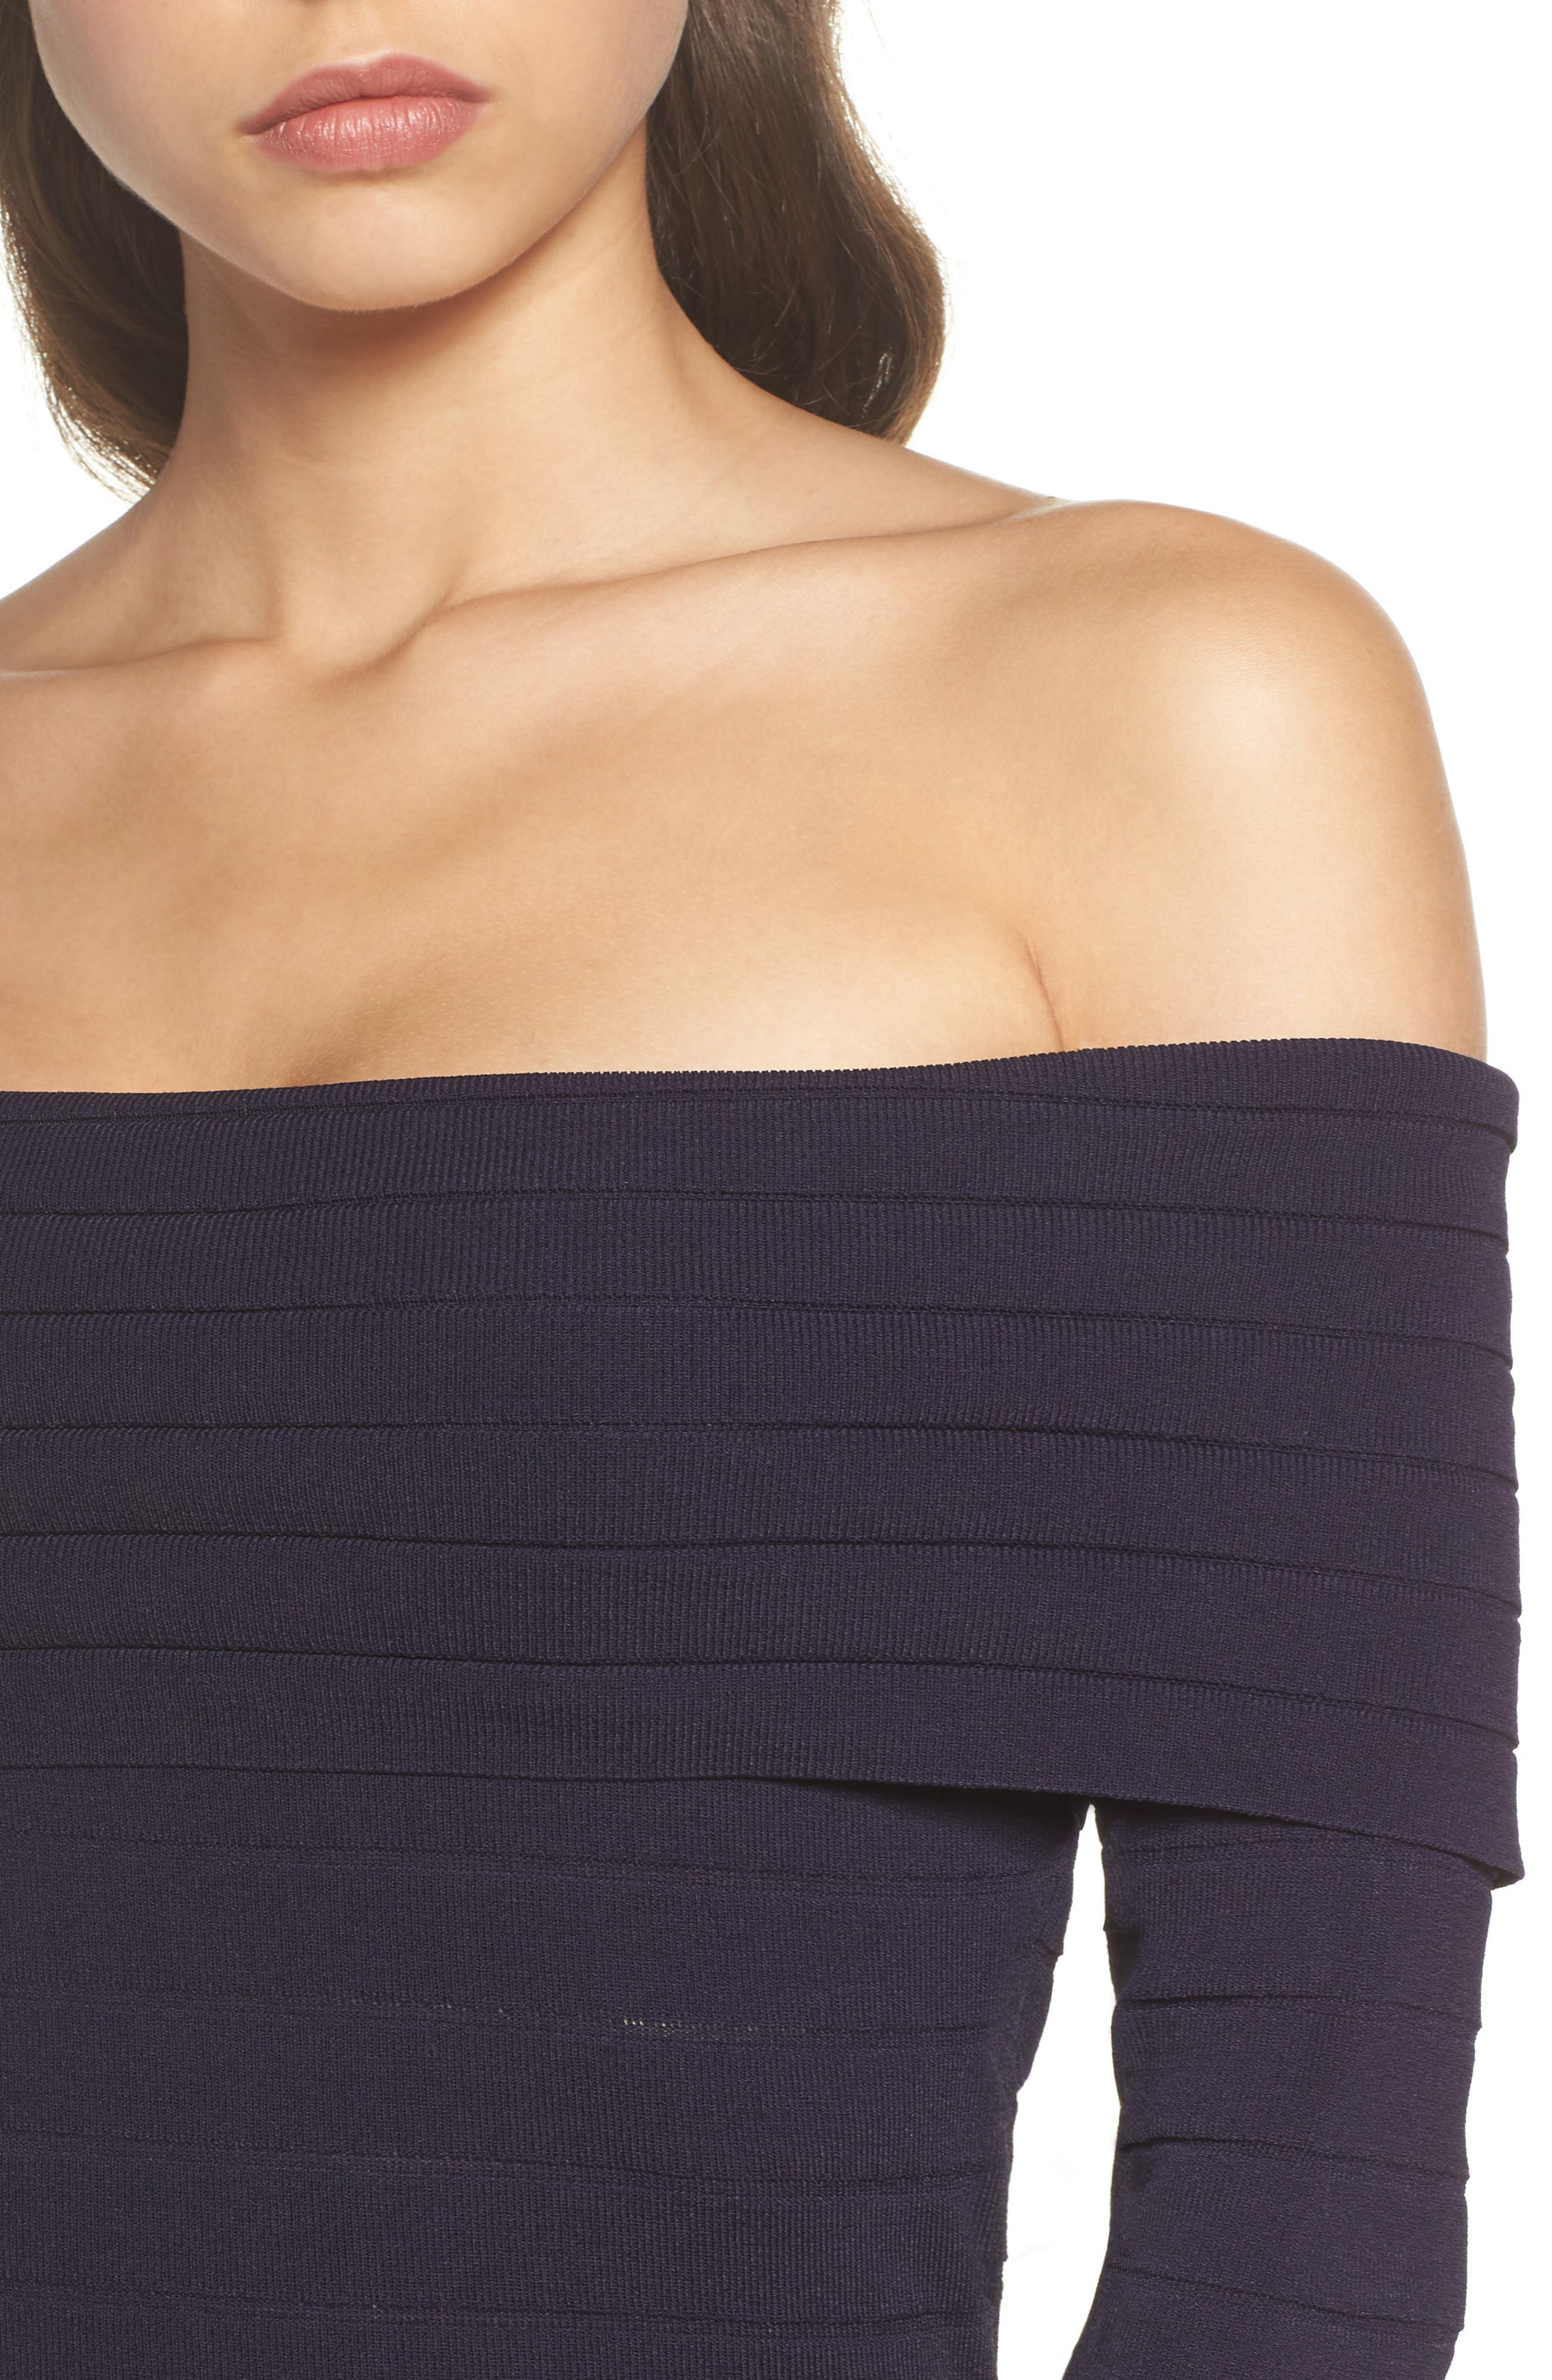 Bandage Midi Dress,                             Alternate thumbnail 18, color,